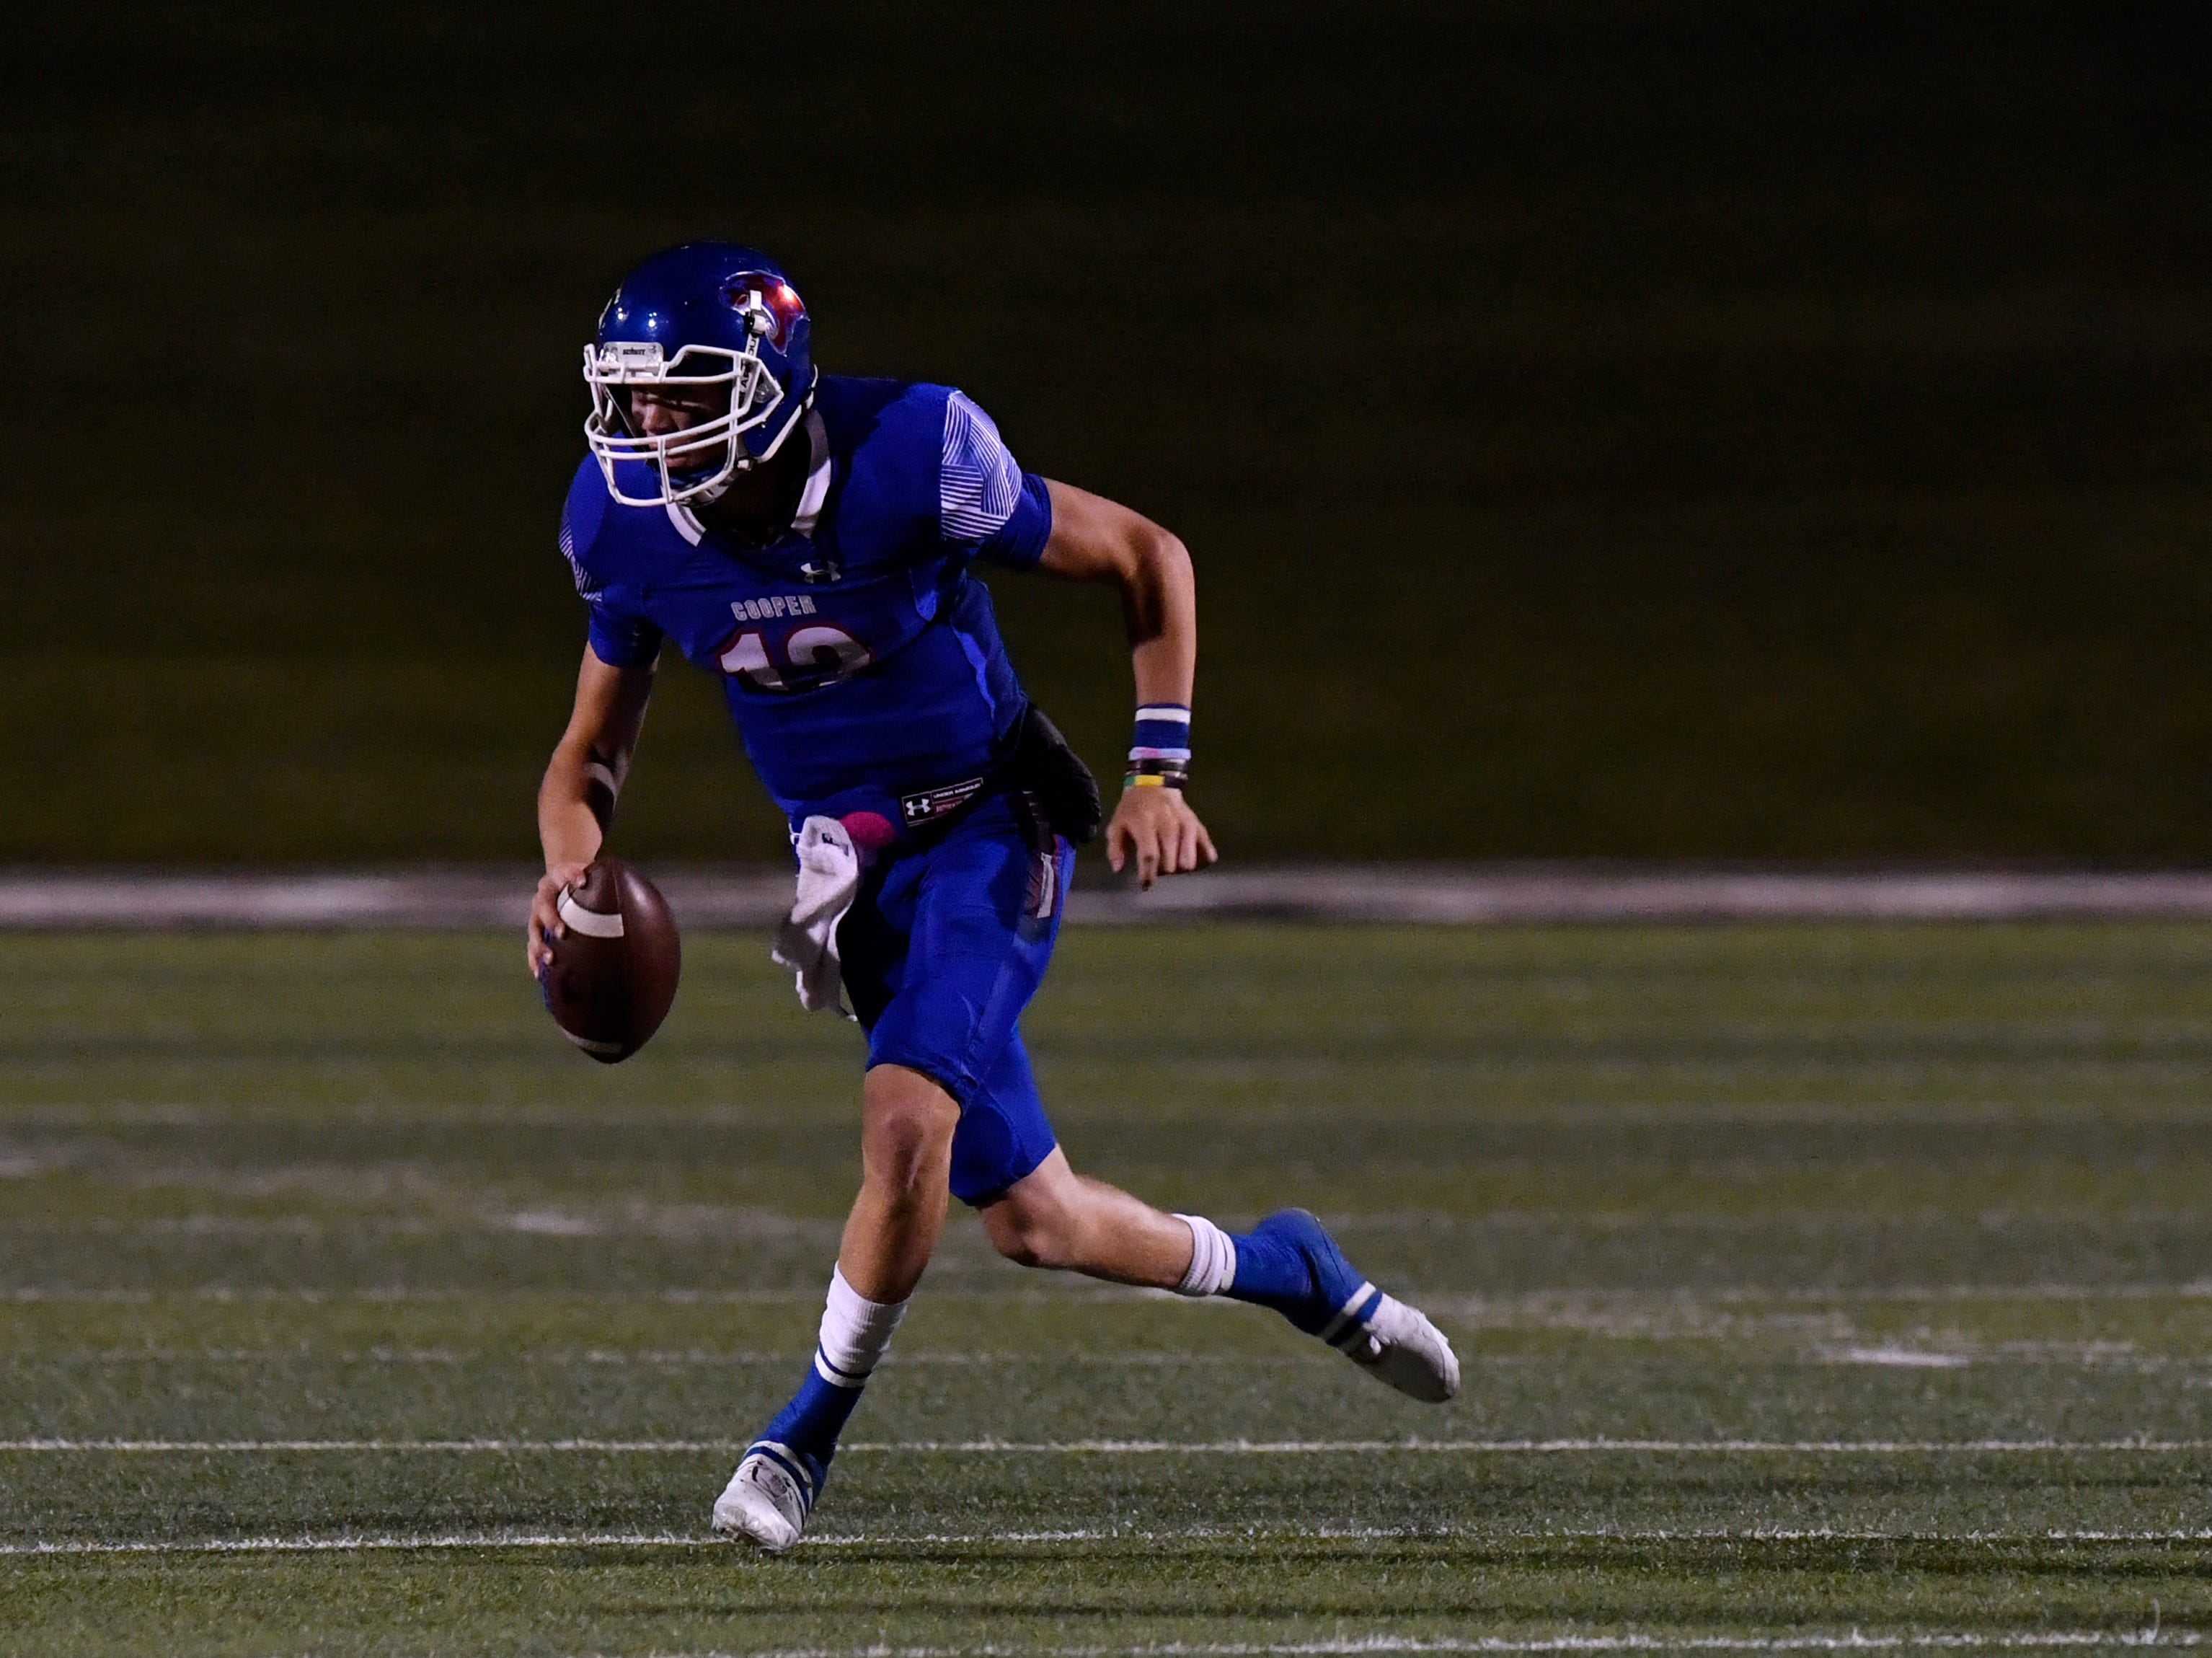 Cooper quarterback Aidan Thompson looks for someone to throw to during a District 4-5A game against Lubbock Coronado.